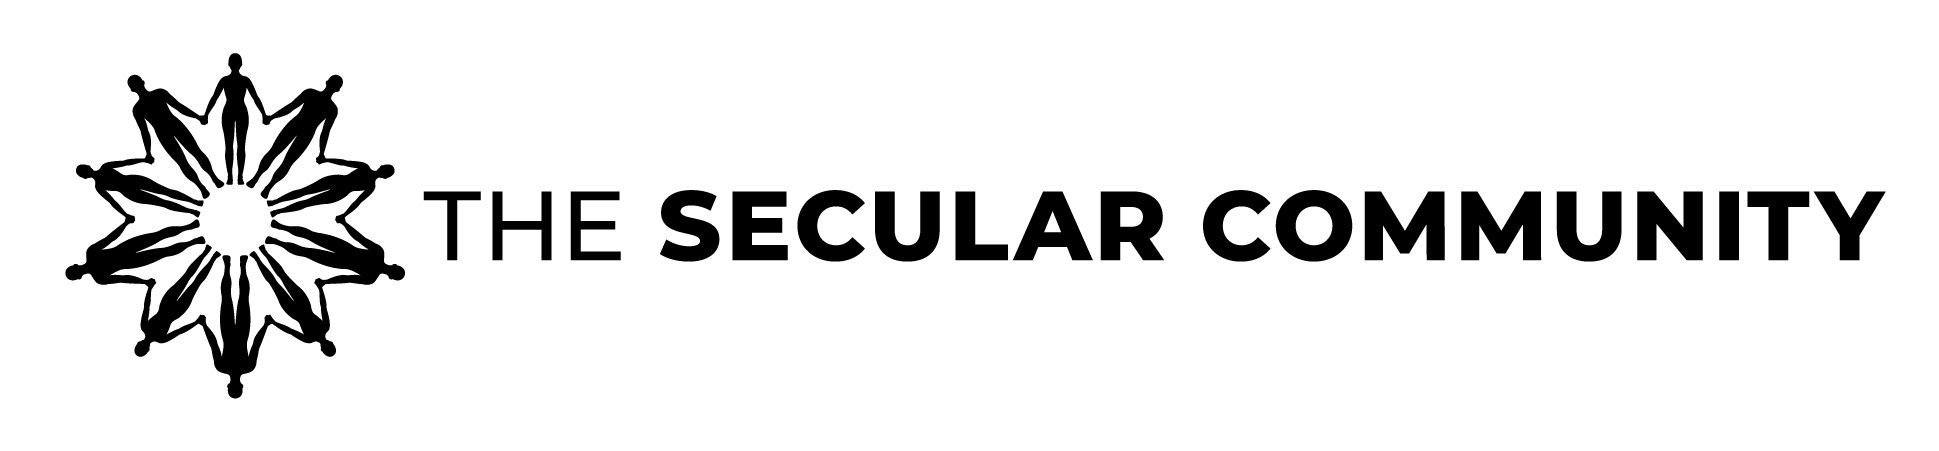 Secular Community Header